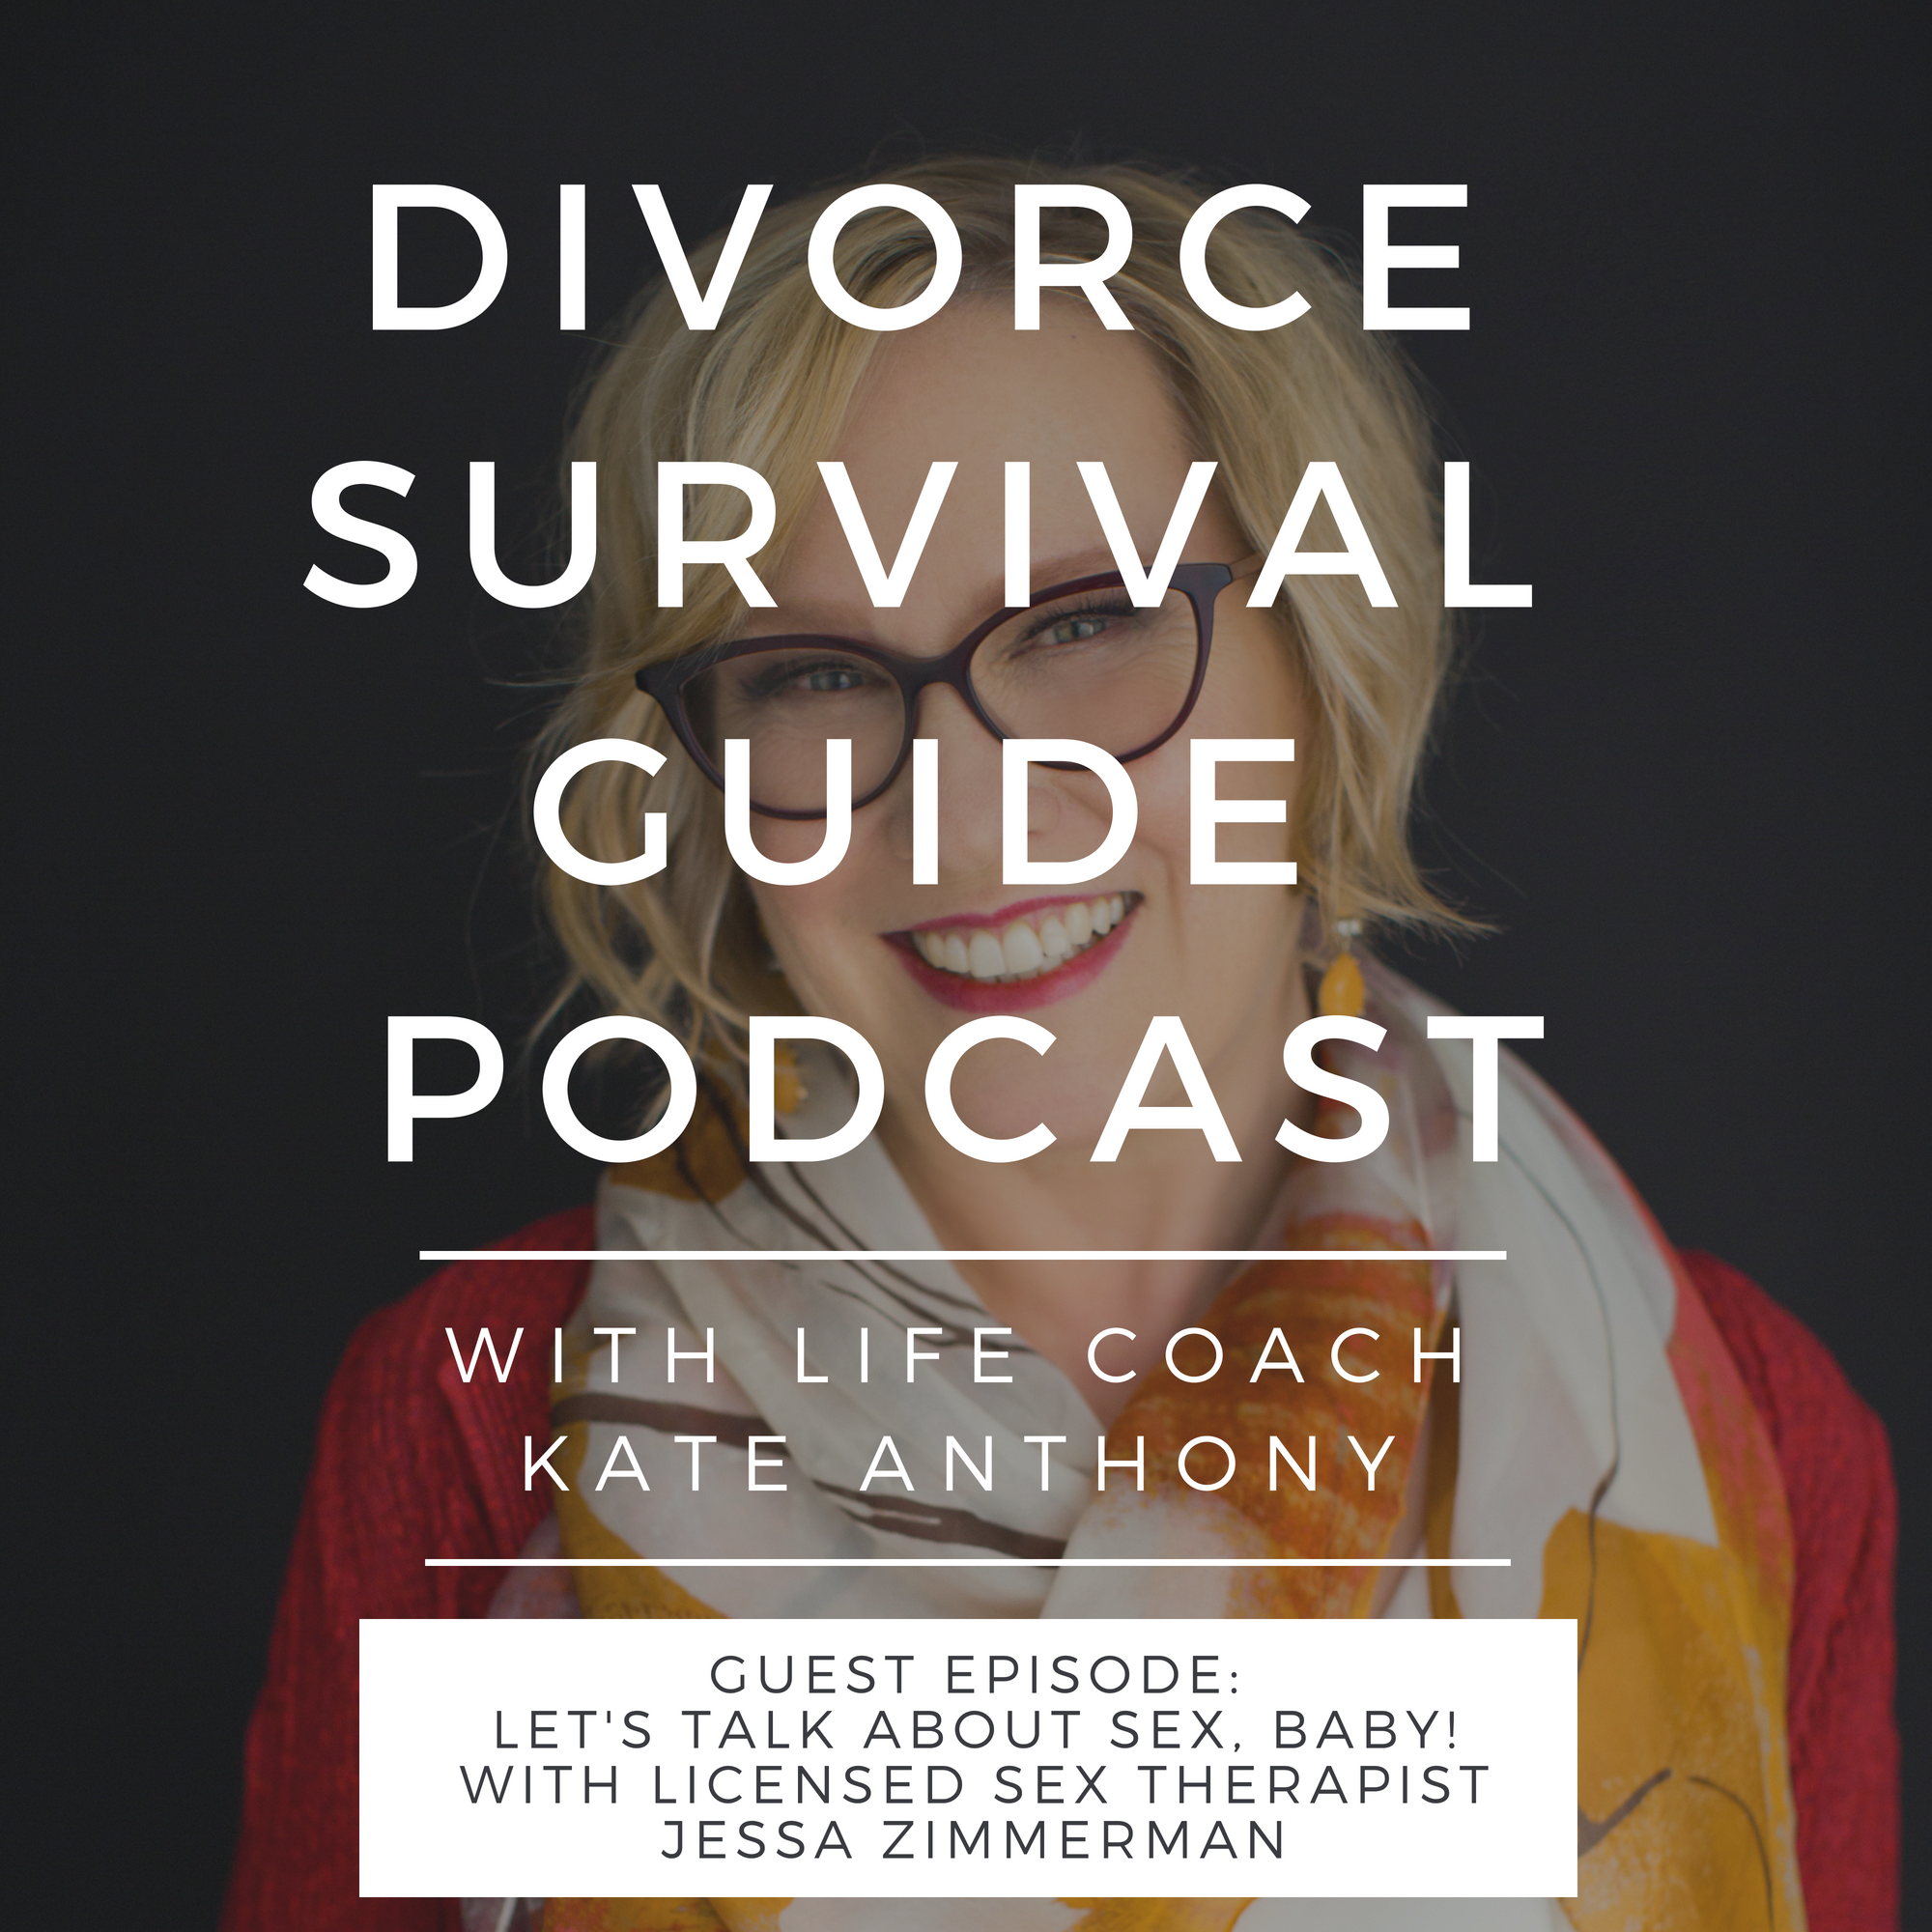 The Divorce Survival Guide Podcast - Let's Talk About Sex, Baby!